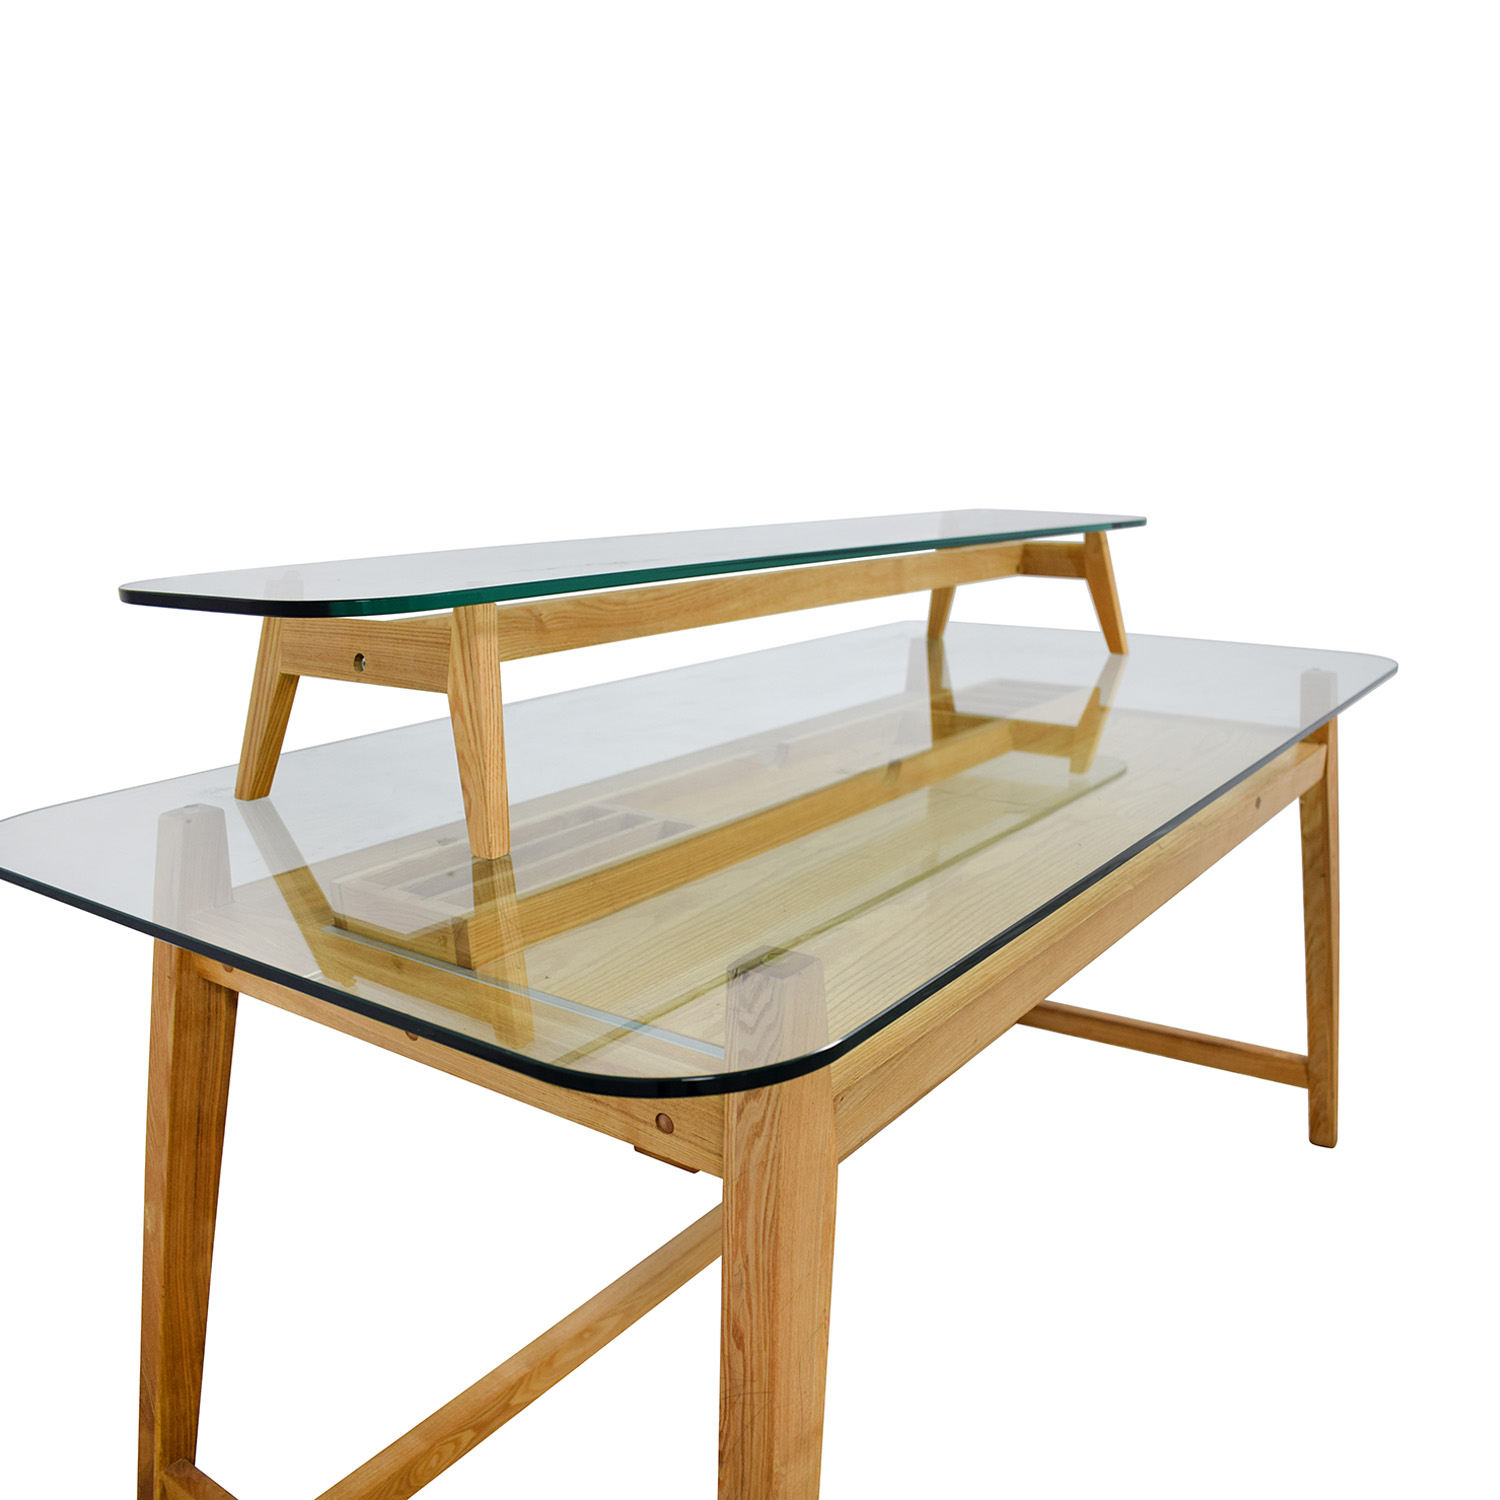 AG Merch Natural Two-Tiered Desk with Glass Top / Tables